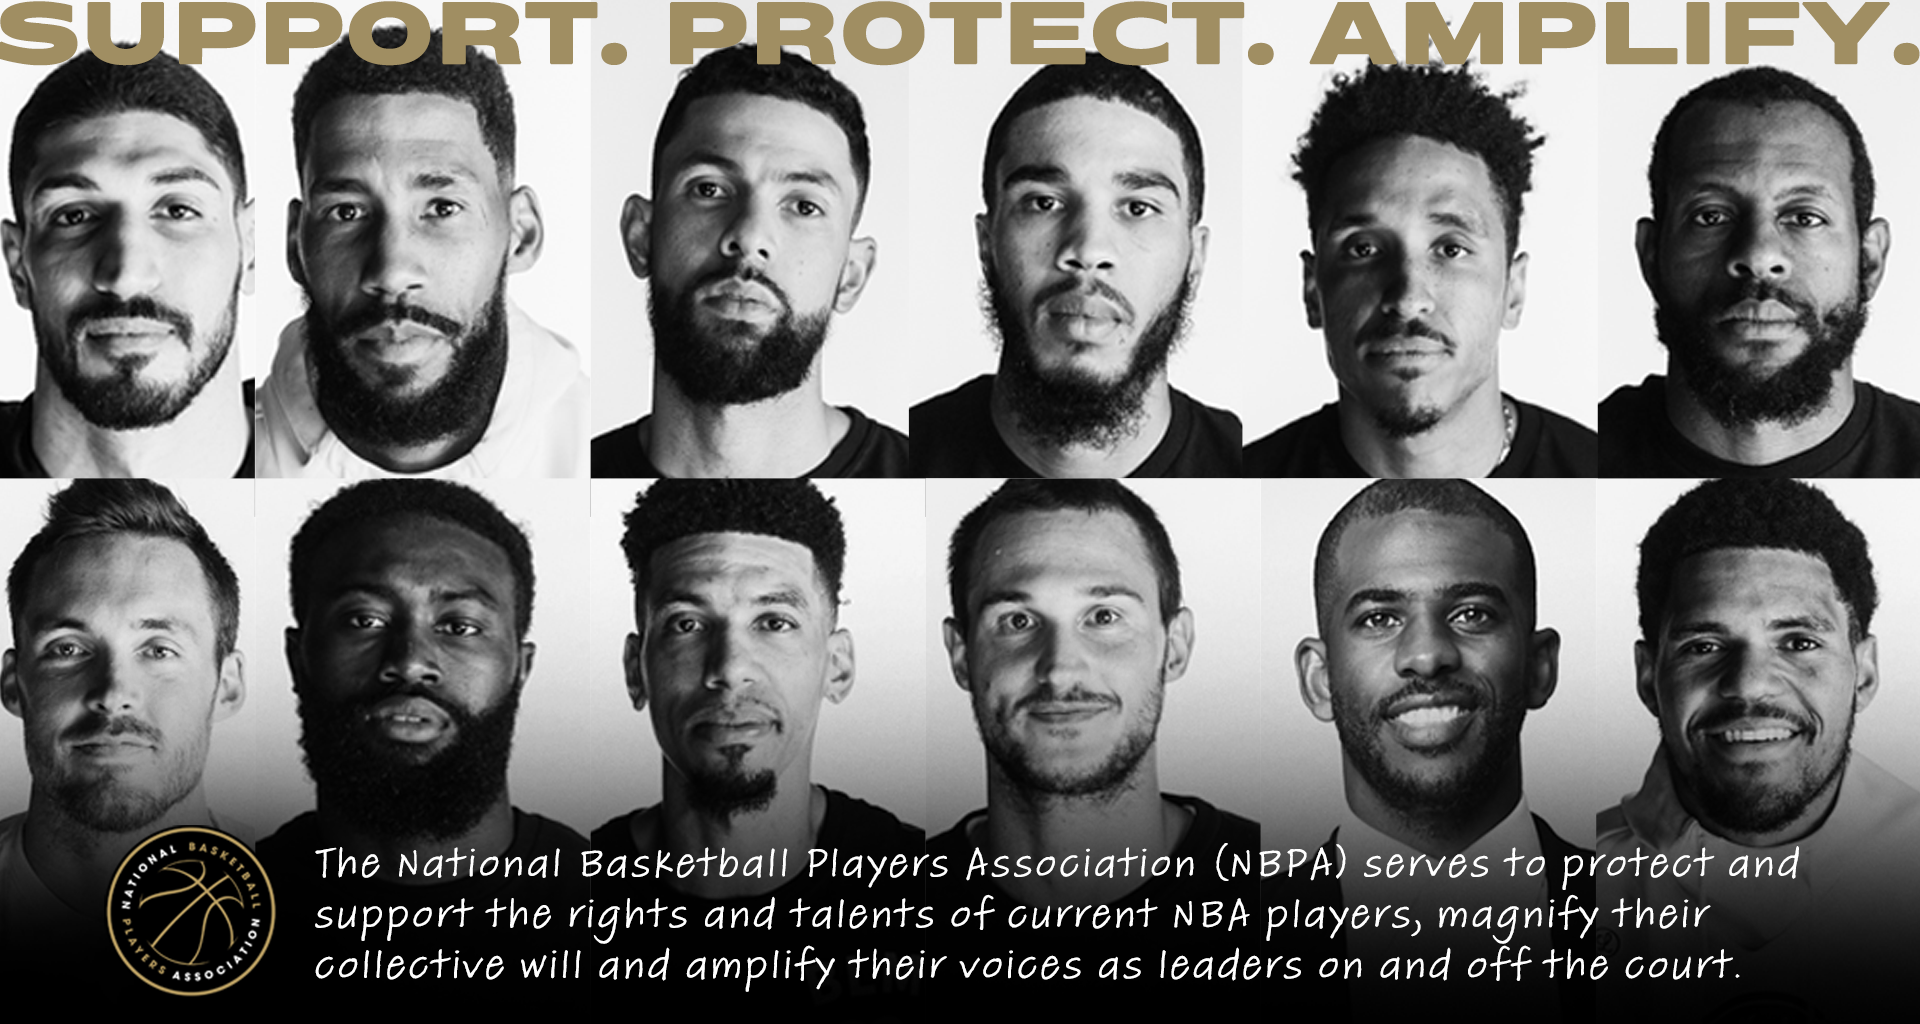 Protect. Support. Amplify. The National Basketball Players Association (NBPA) serves to protect and support the rights and talents of current NBA players, magnify their collective will and amplify their voices as leaders on and off the court.